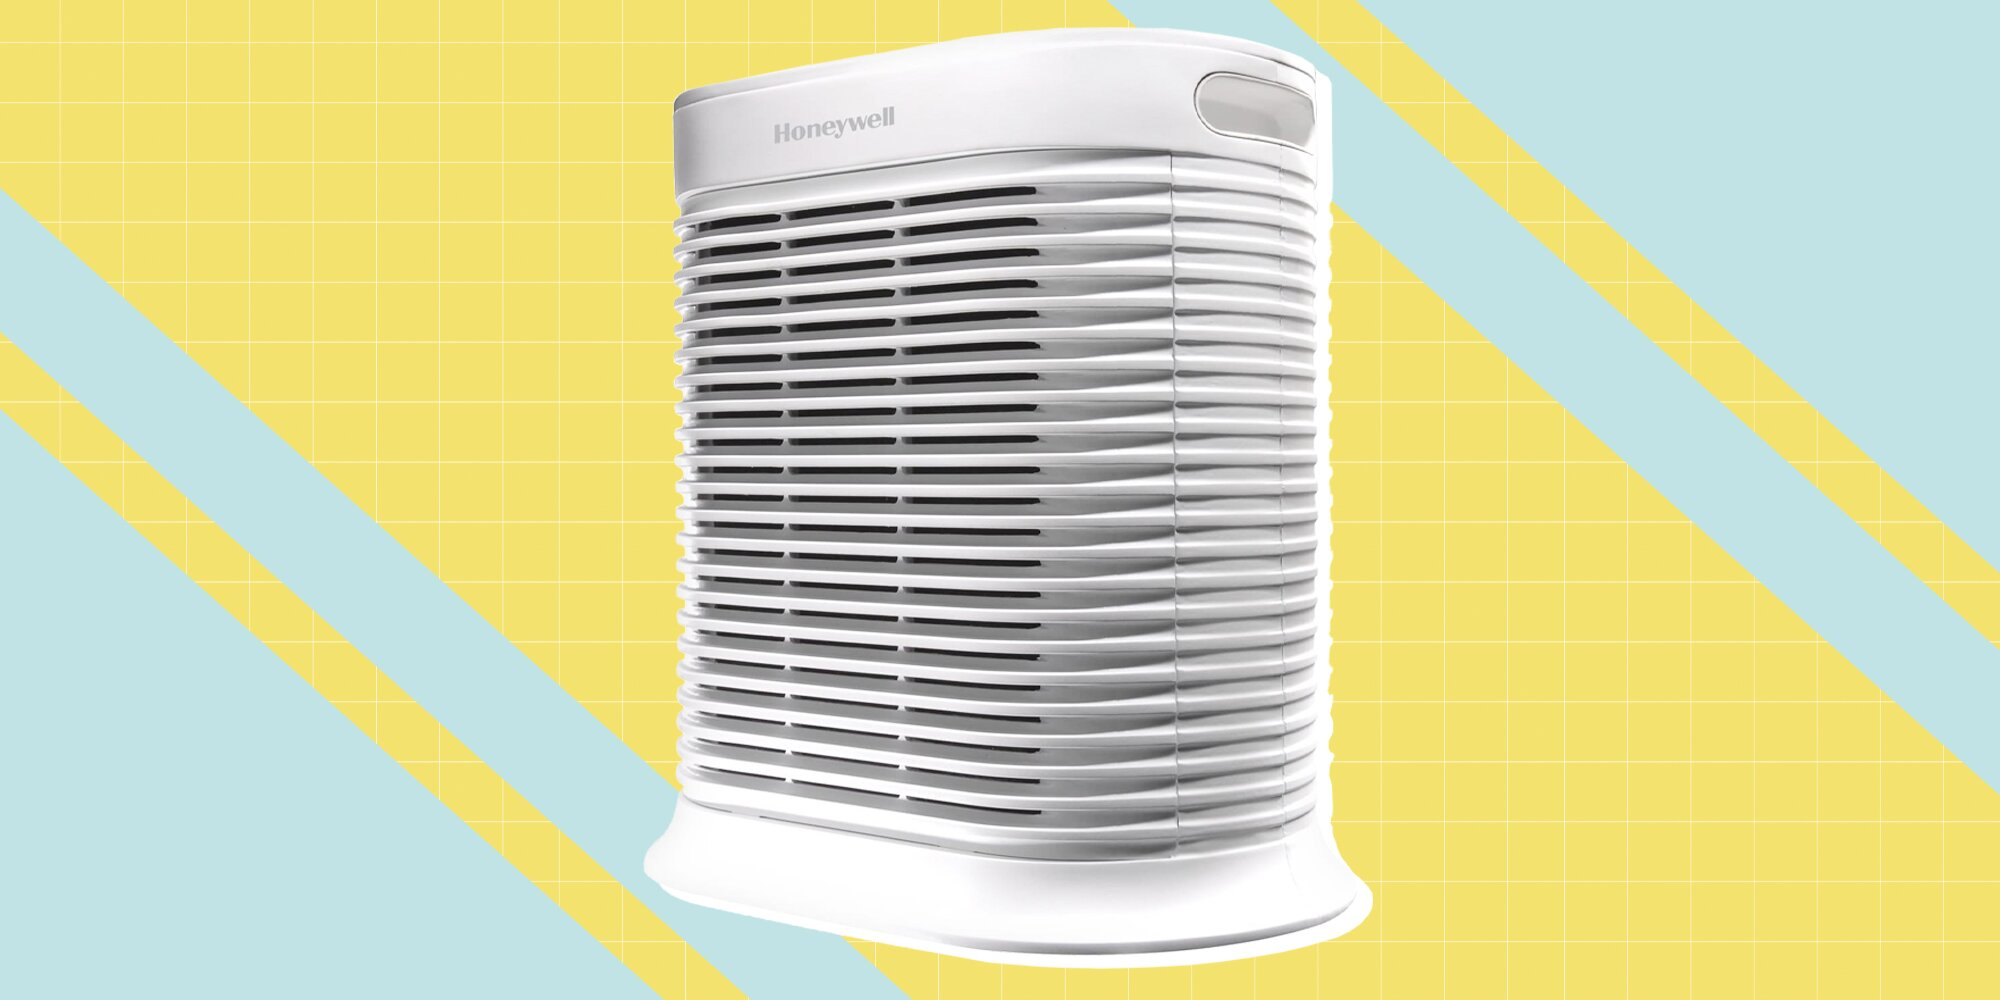 The #1 Thing to Look for When Buying an Air Purifier, According to Research